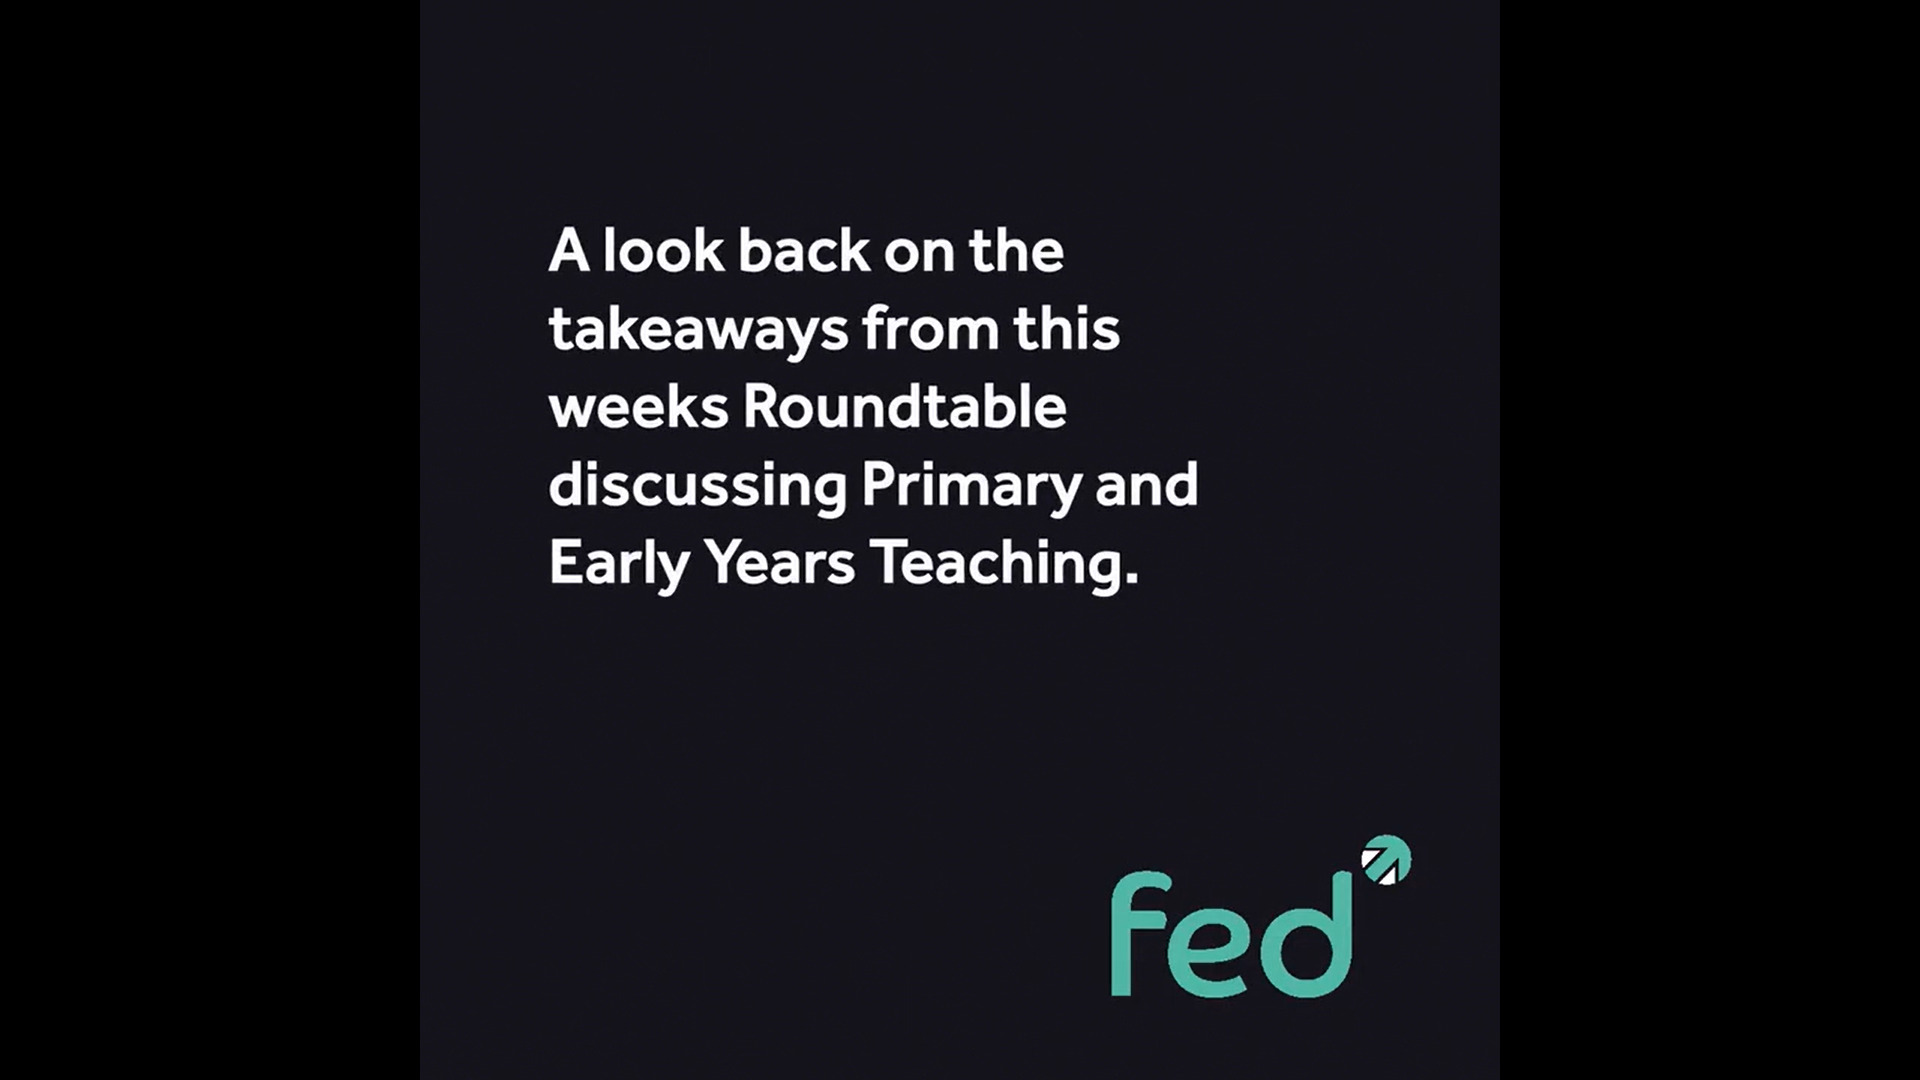 Roundtable Takeaways - Primary and Early Years Teaching